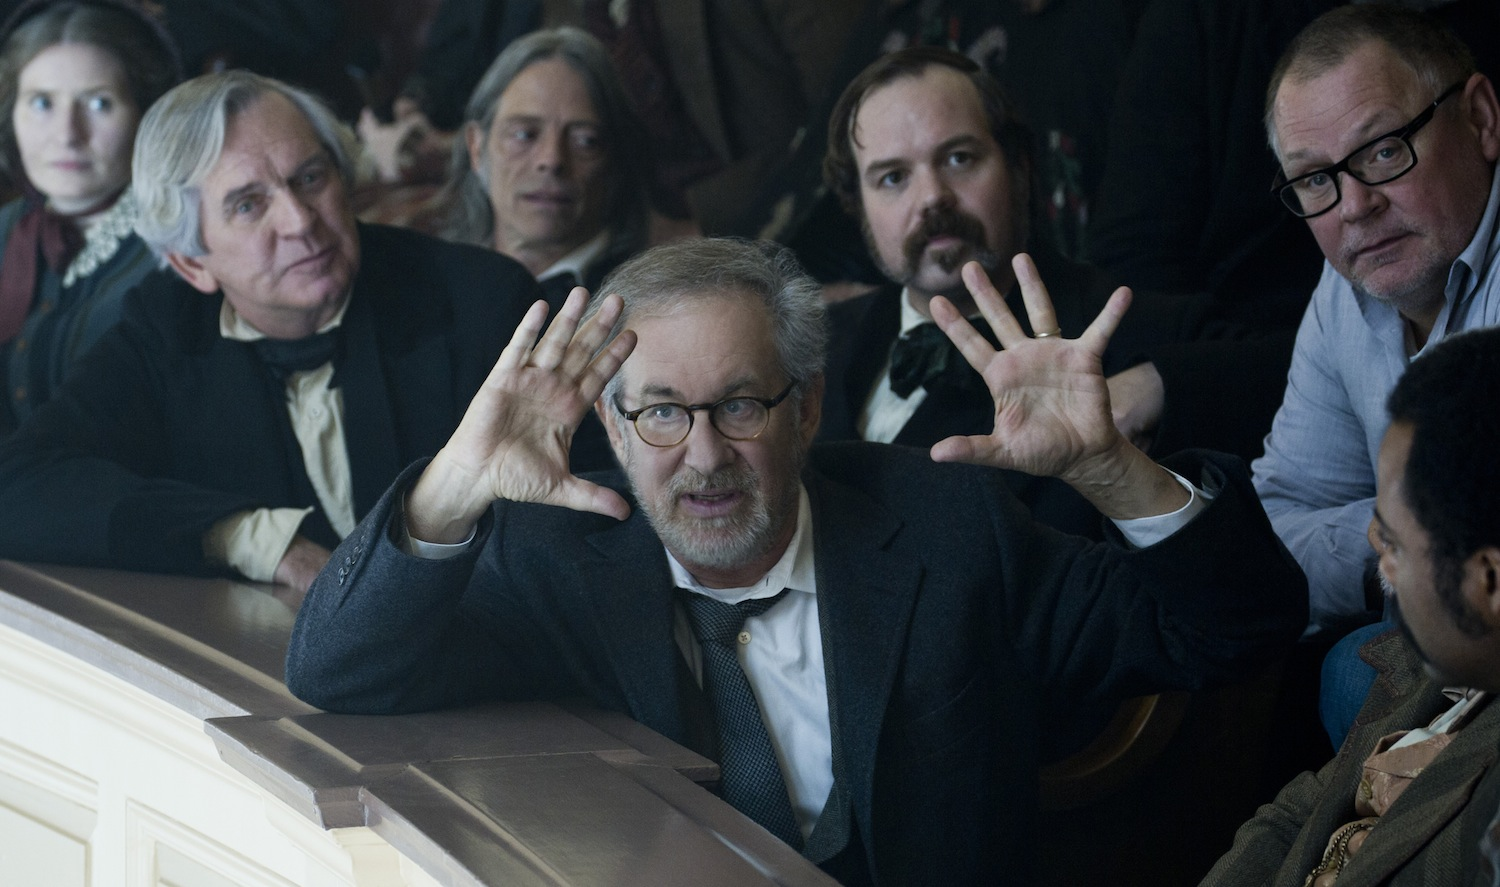 https://voyages.ideoz.fr/wp-content/plugins/wp-o-matic/cache/b0a2ef7fb0_spielberg-directing-lincoln1.jpg